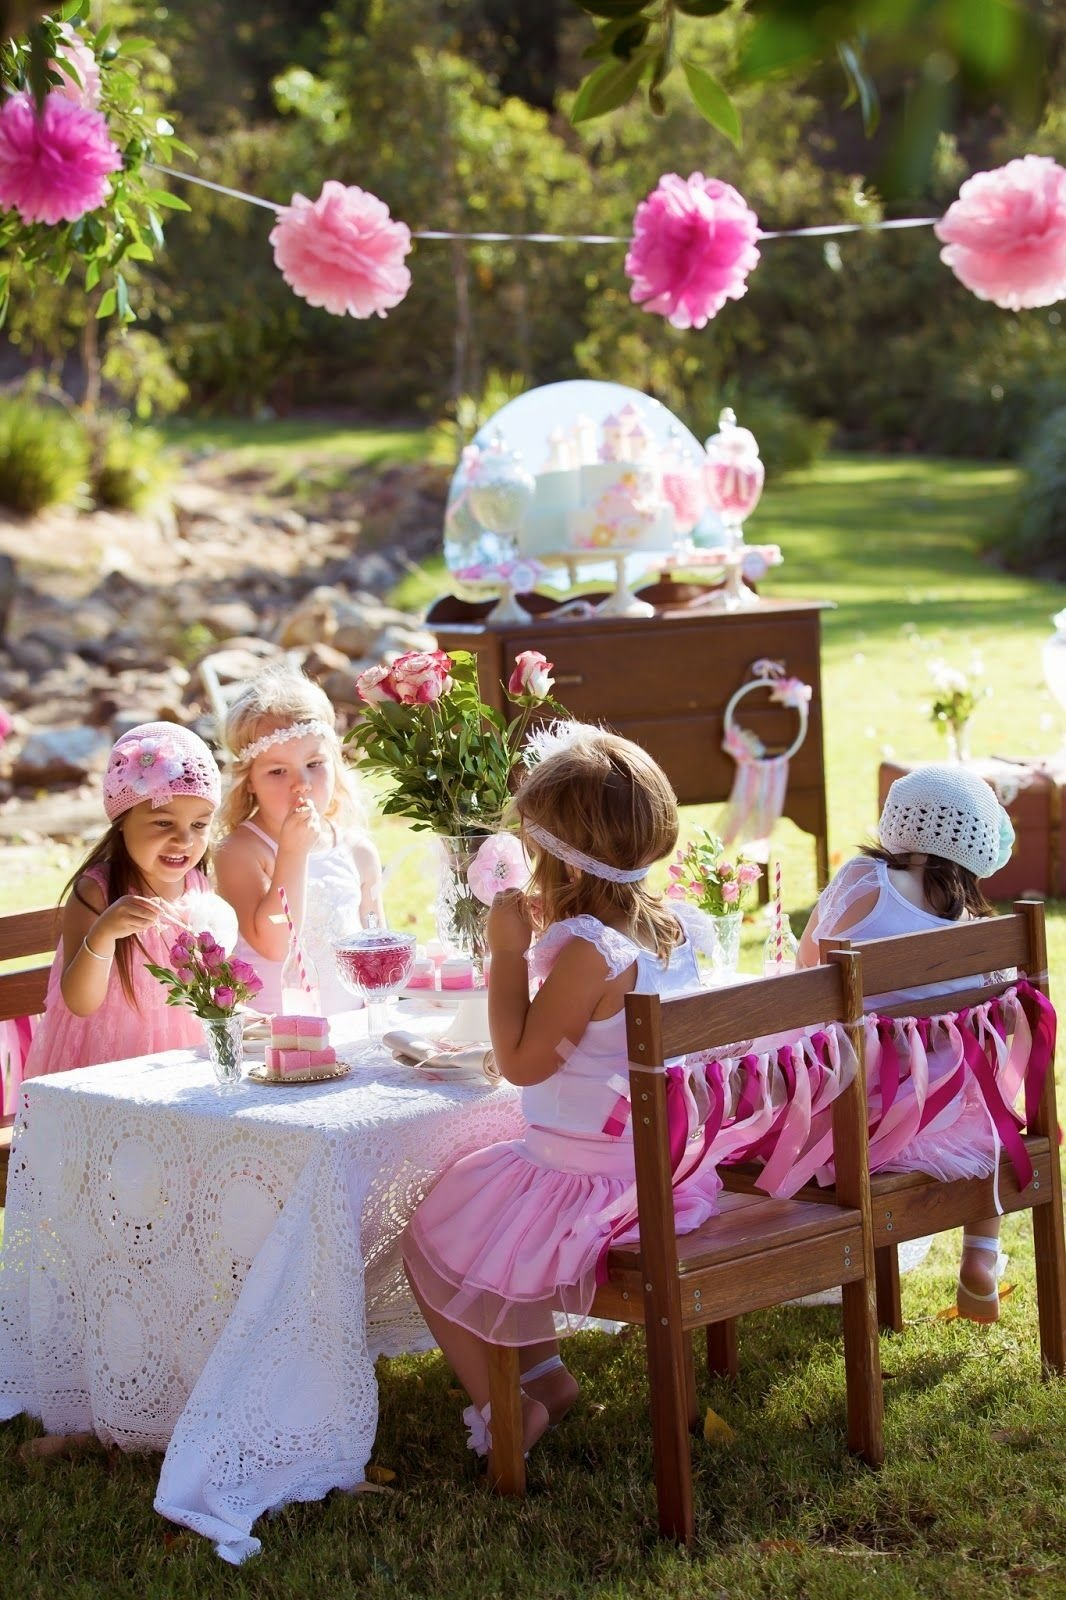 10 Stylish Princess Tea Party Birthday Ideas party inspirations vintage princess tea partymemories are sweet 2020